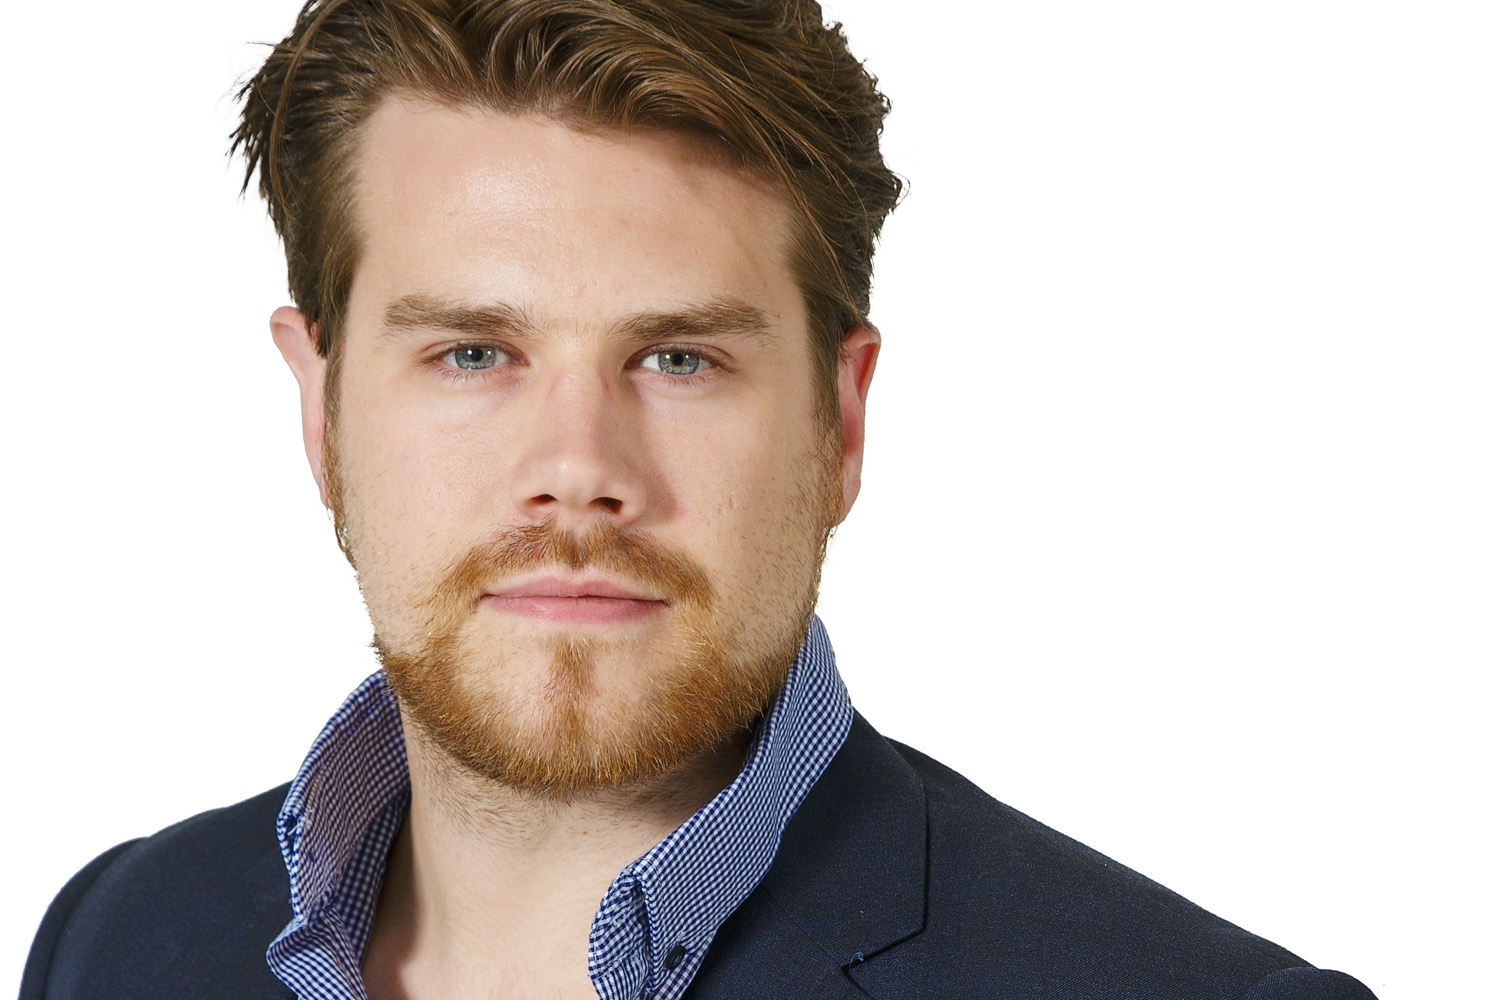 Mens_Commercial_Headshot_Photographer_Newbury_Berkshire_001.jpg